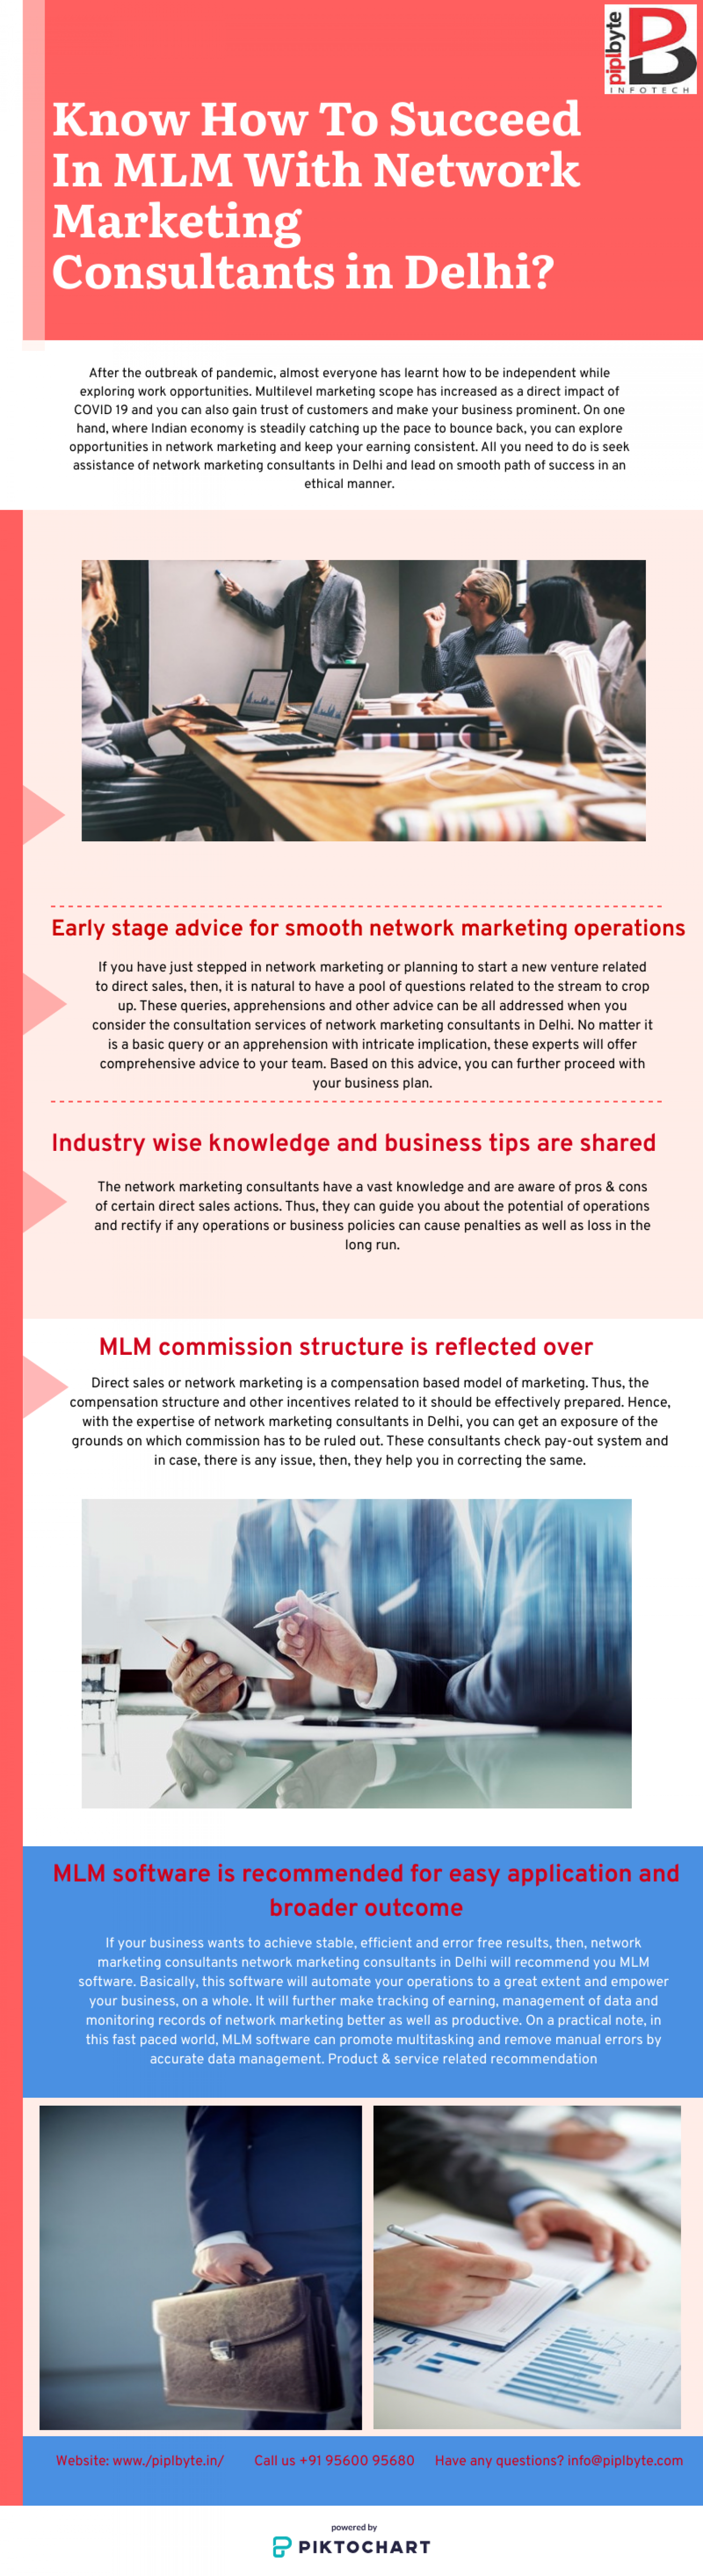 Know How To Succeed In MLM With Network Marketing Consultants in Delhi? Infographic